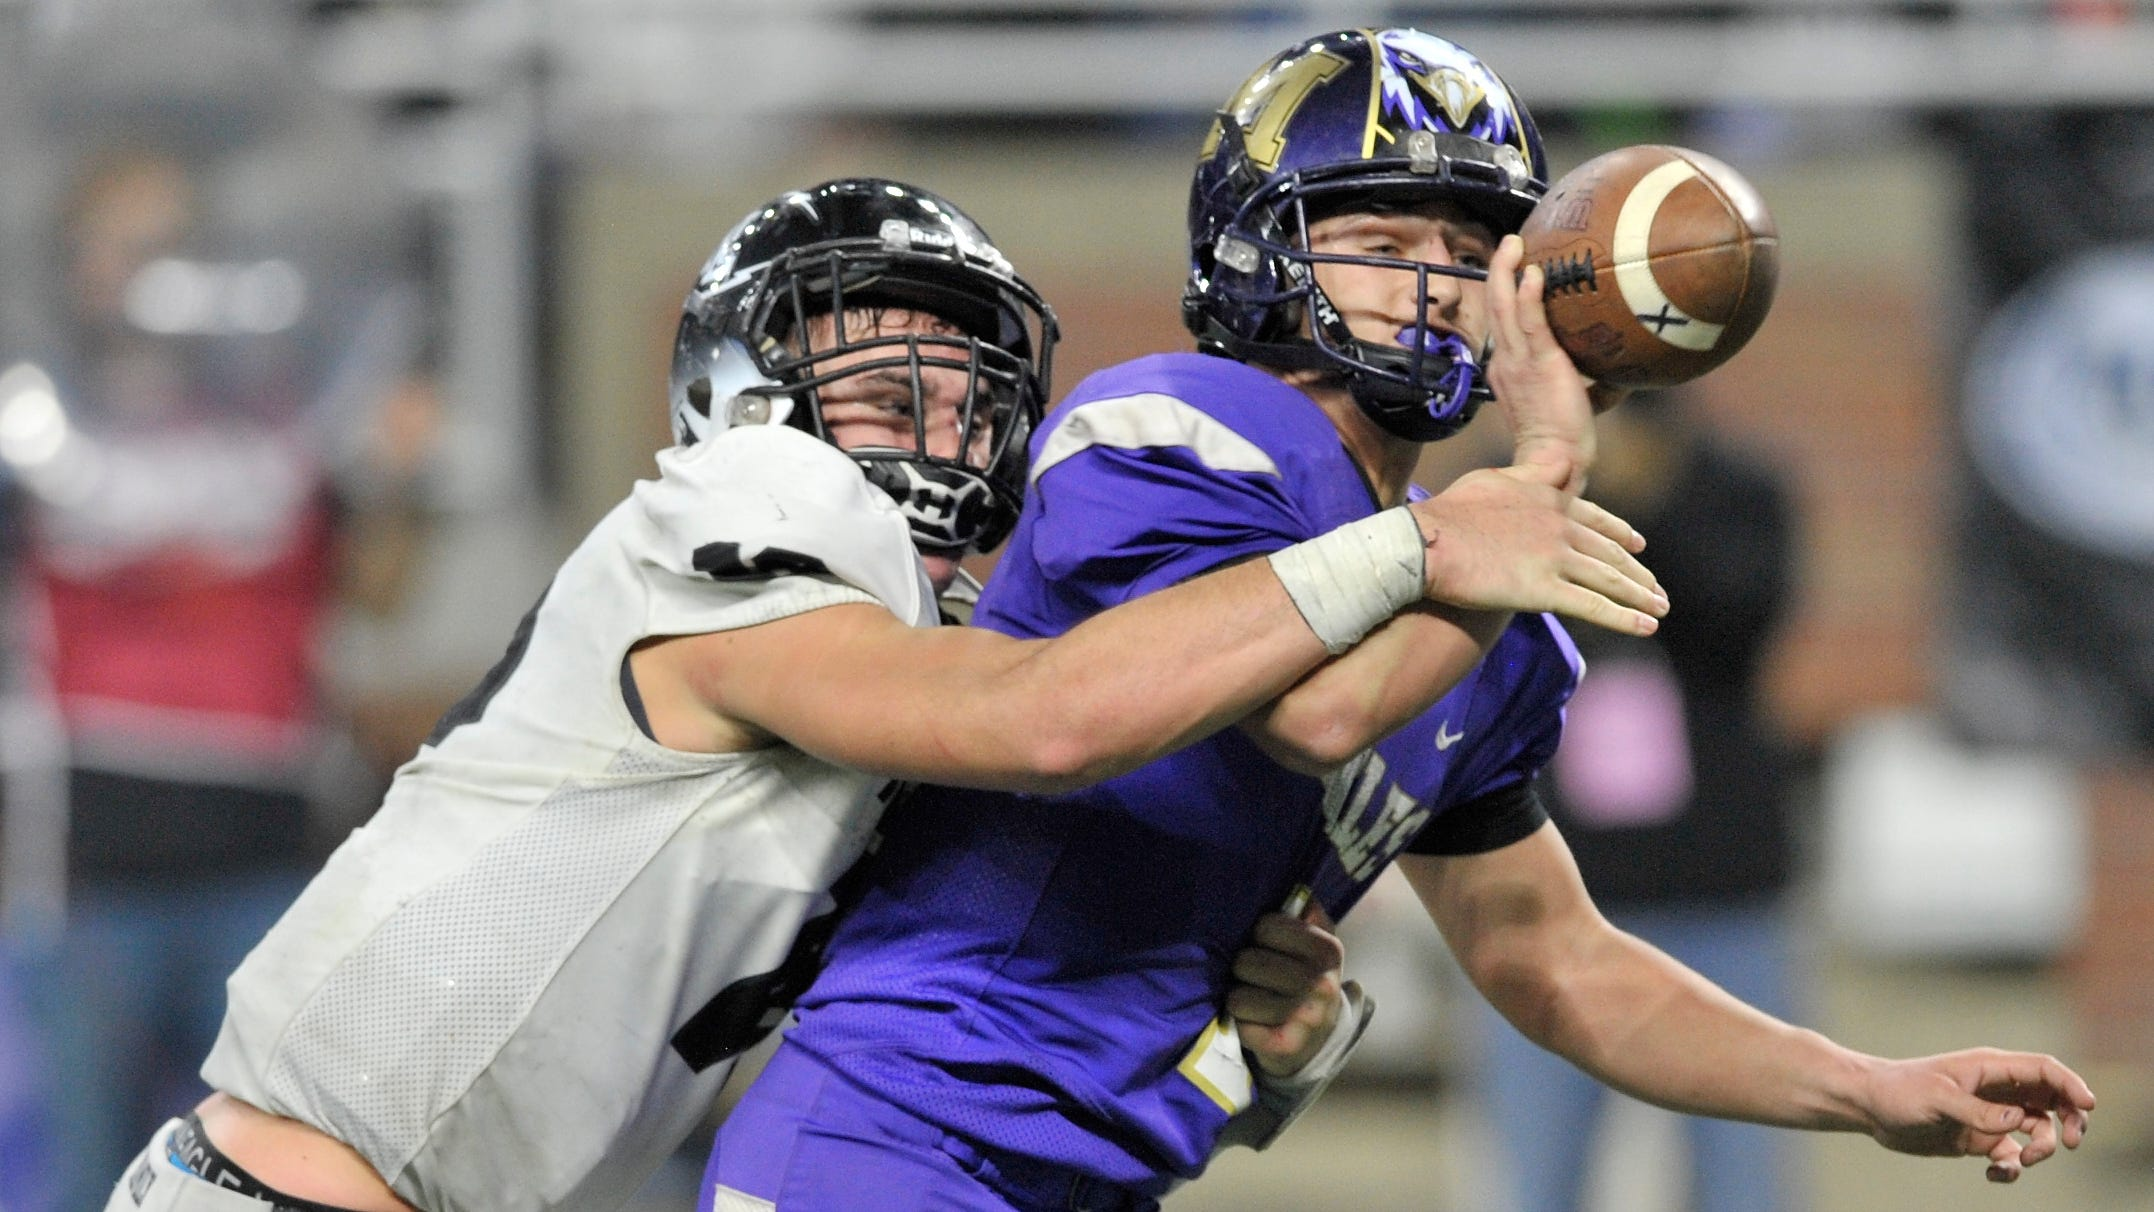 Detroit News All State Football Team Division 7 8